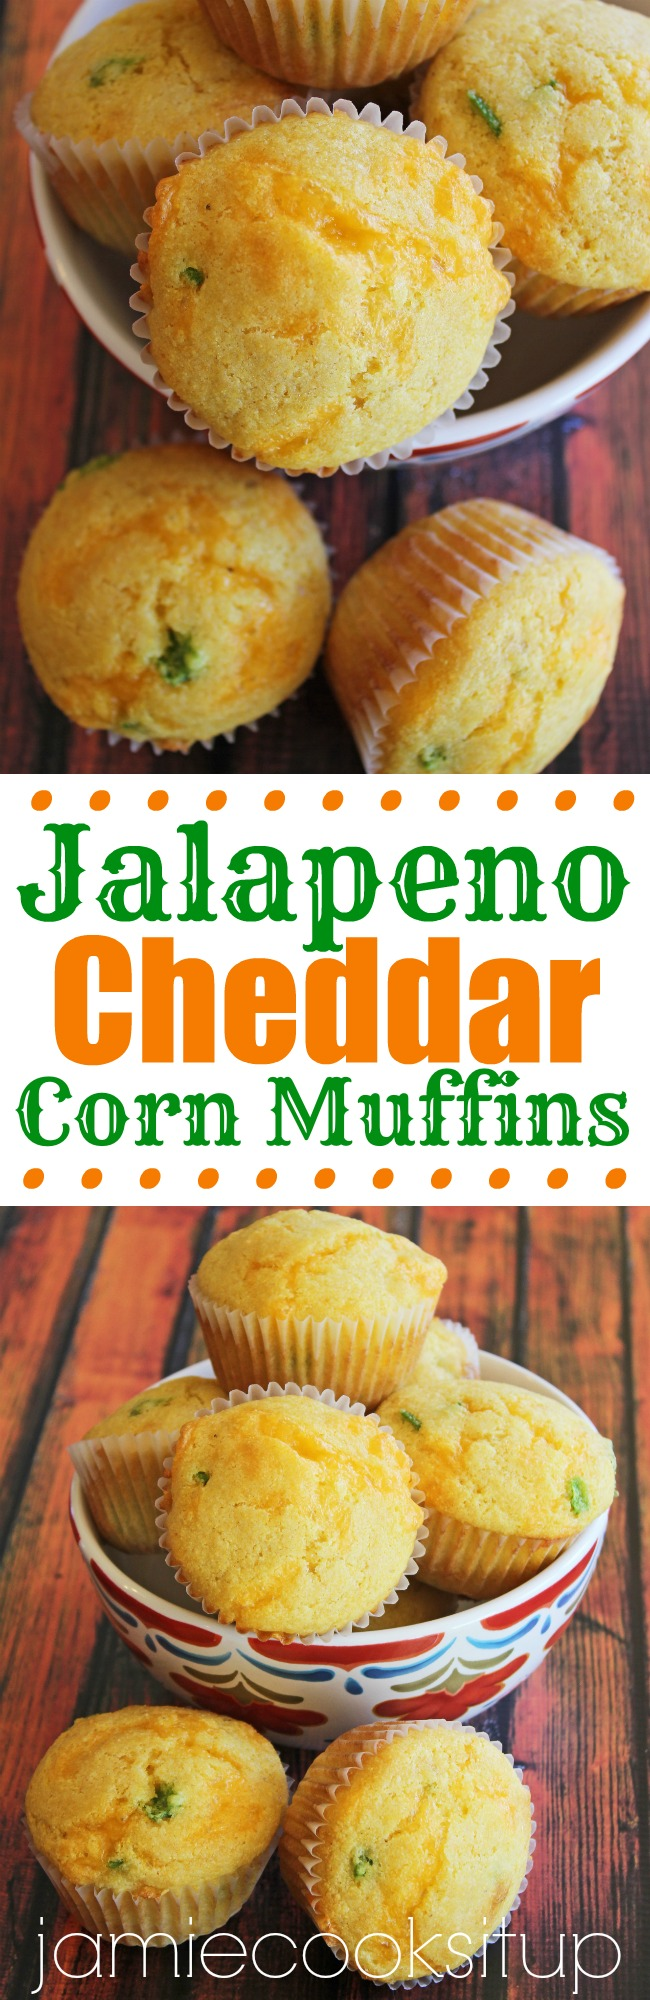 Jalapeno Cheddar Corn Muffins from Jamie Cooks It Up!